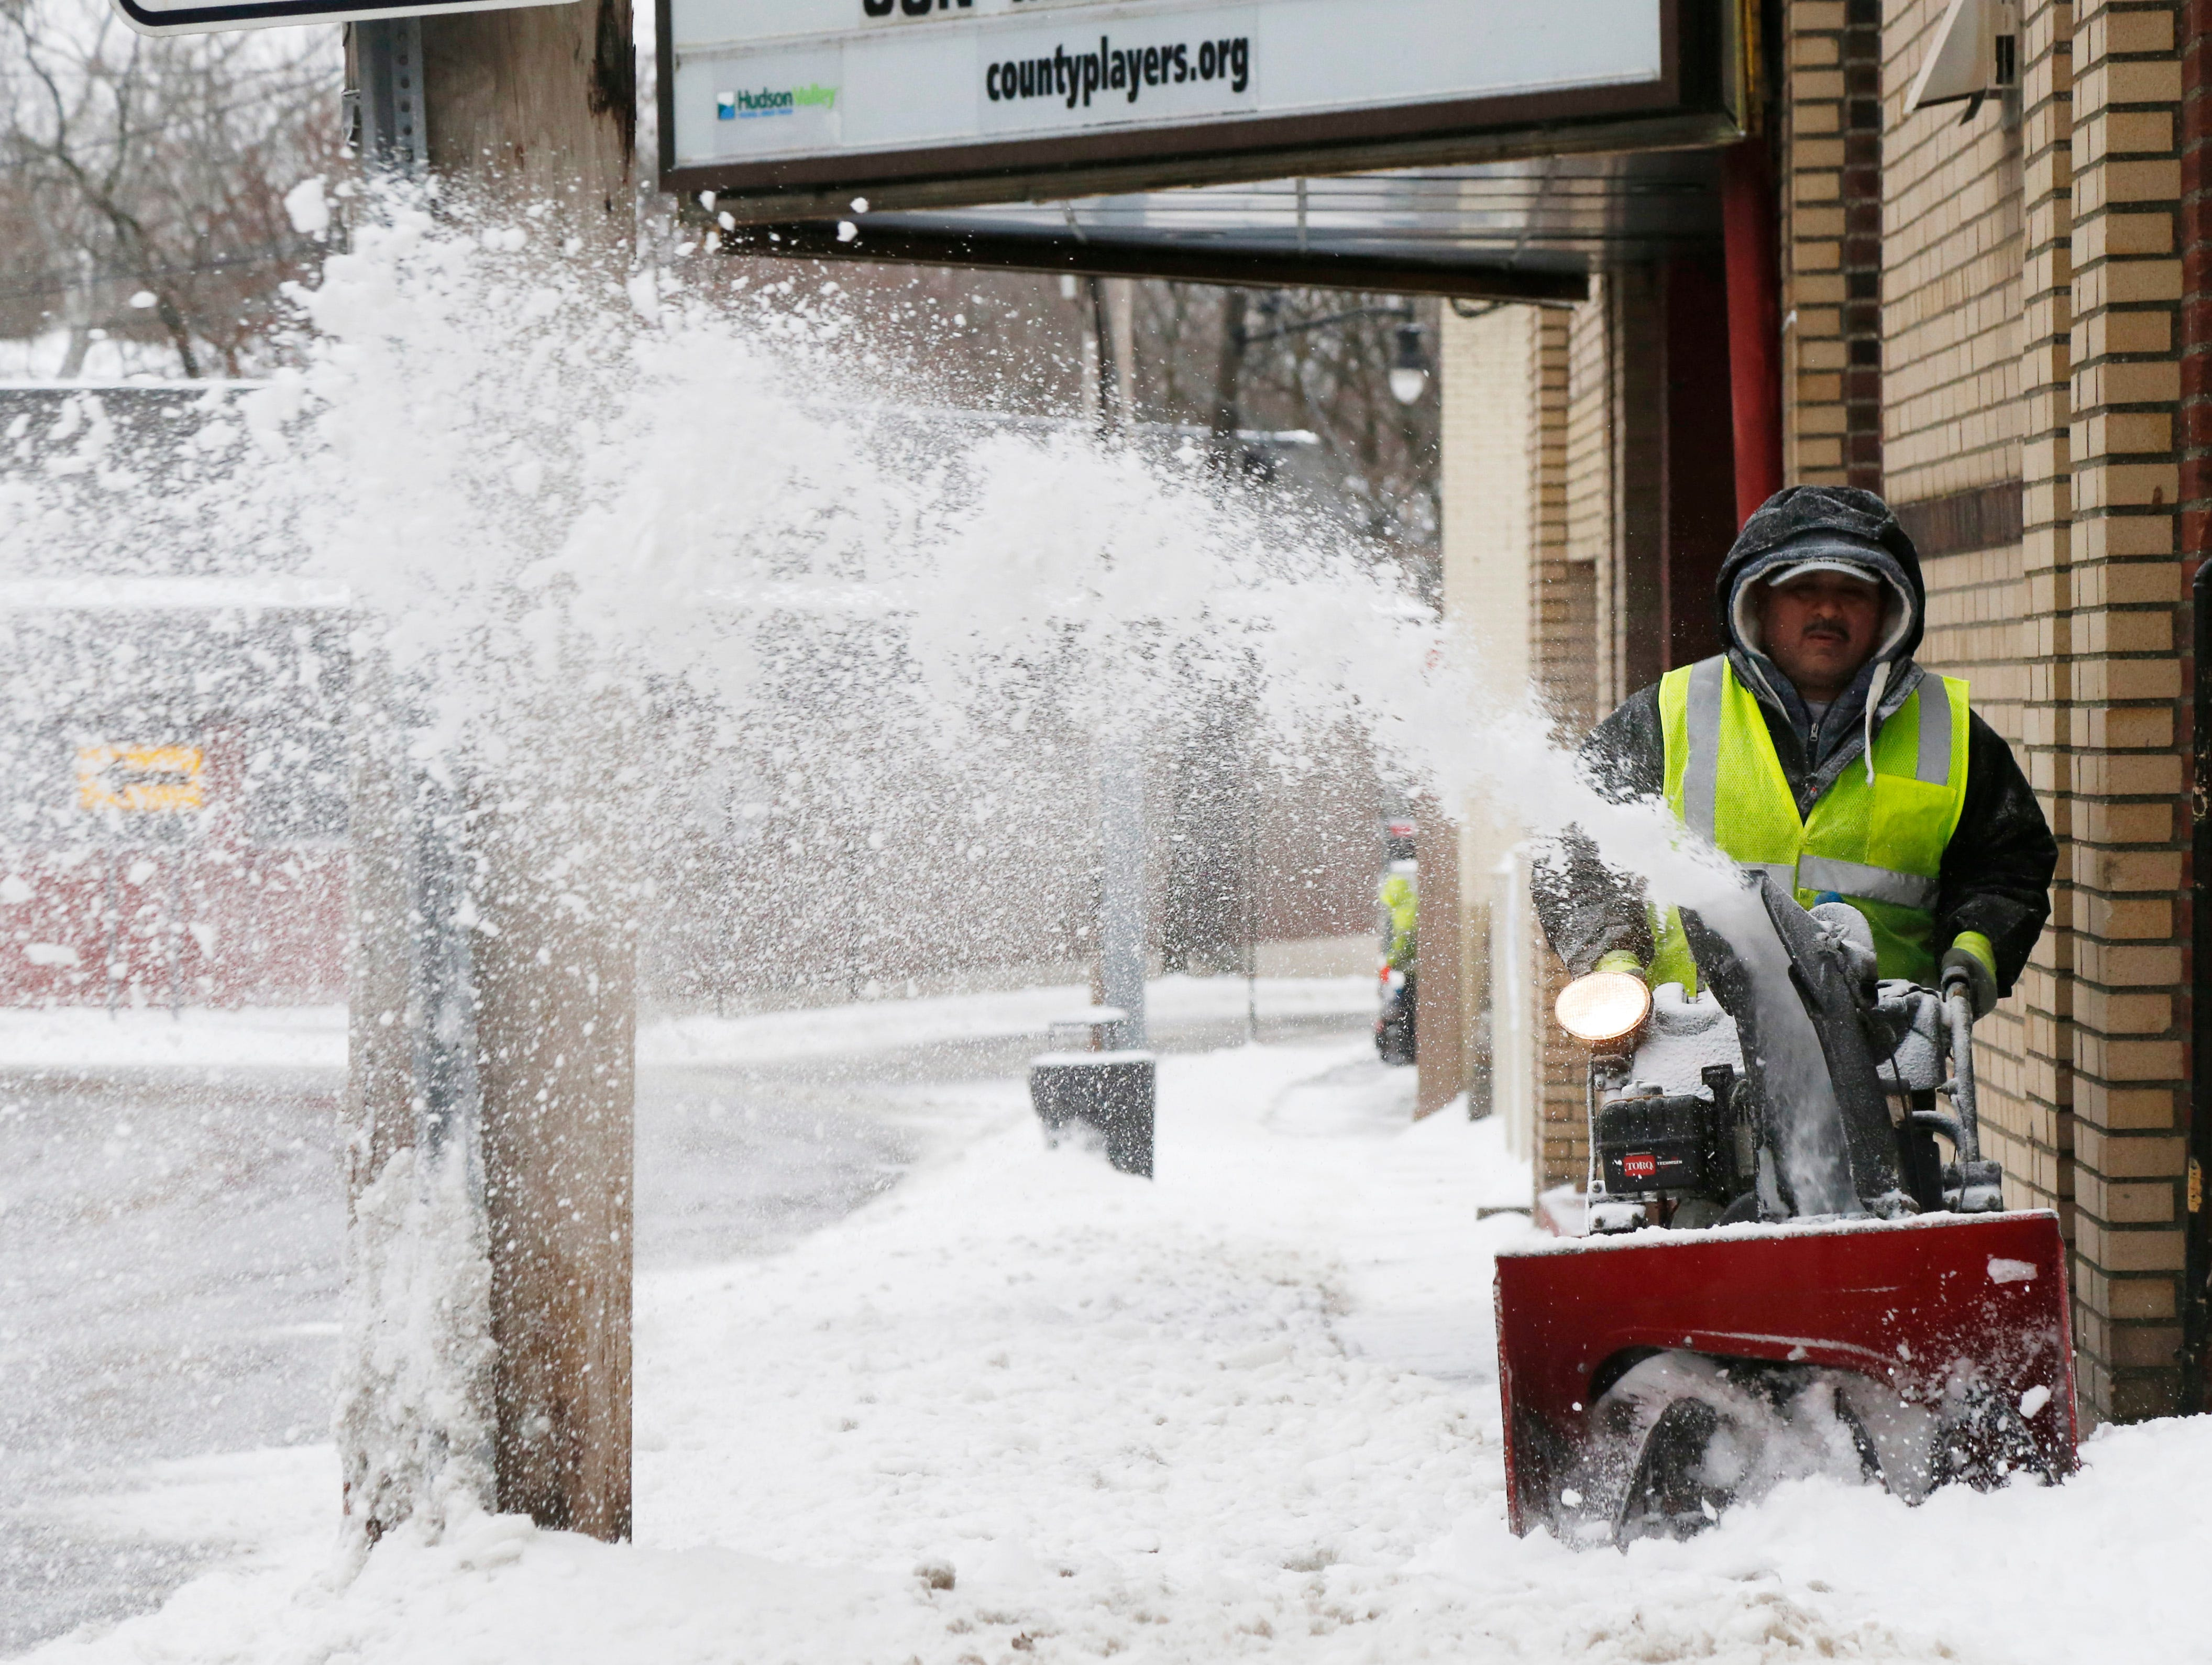 Mauricio Sibada clears the sidewalk along West Main Street in the Village of Wappingers Falls on January 20, 2019.